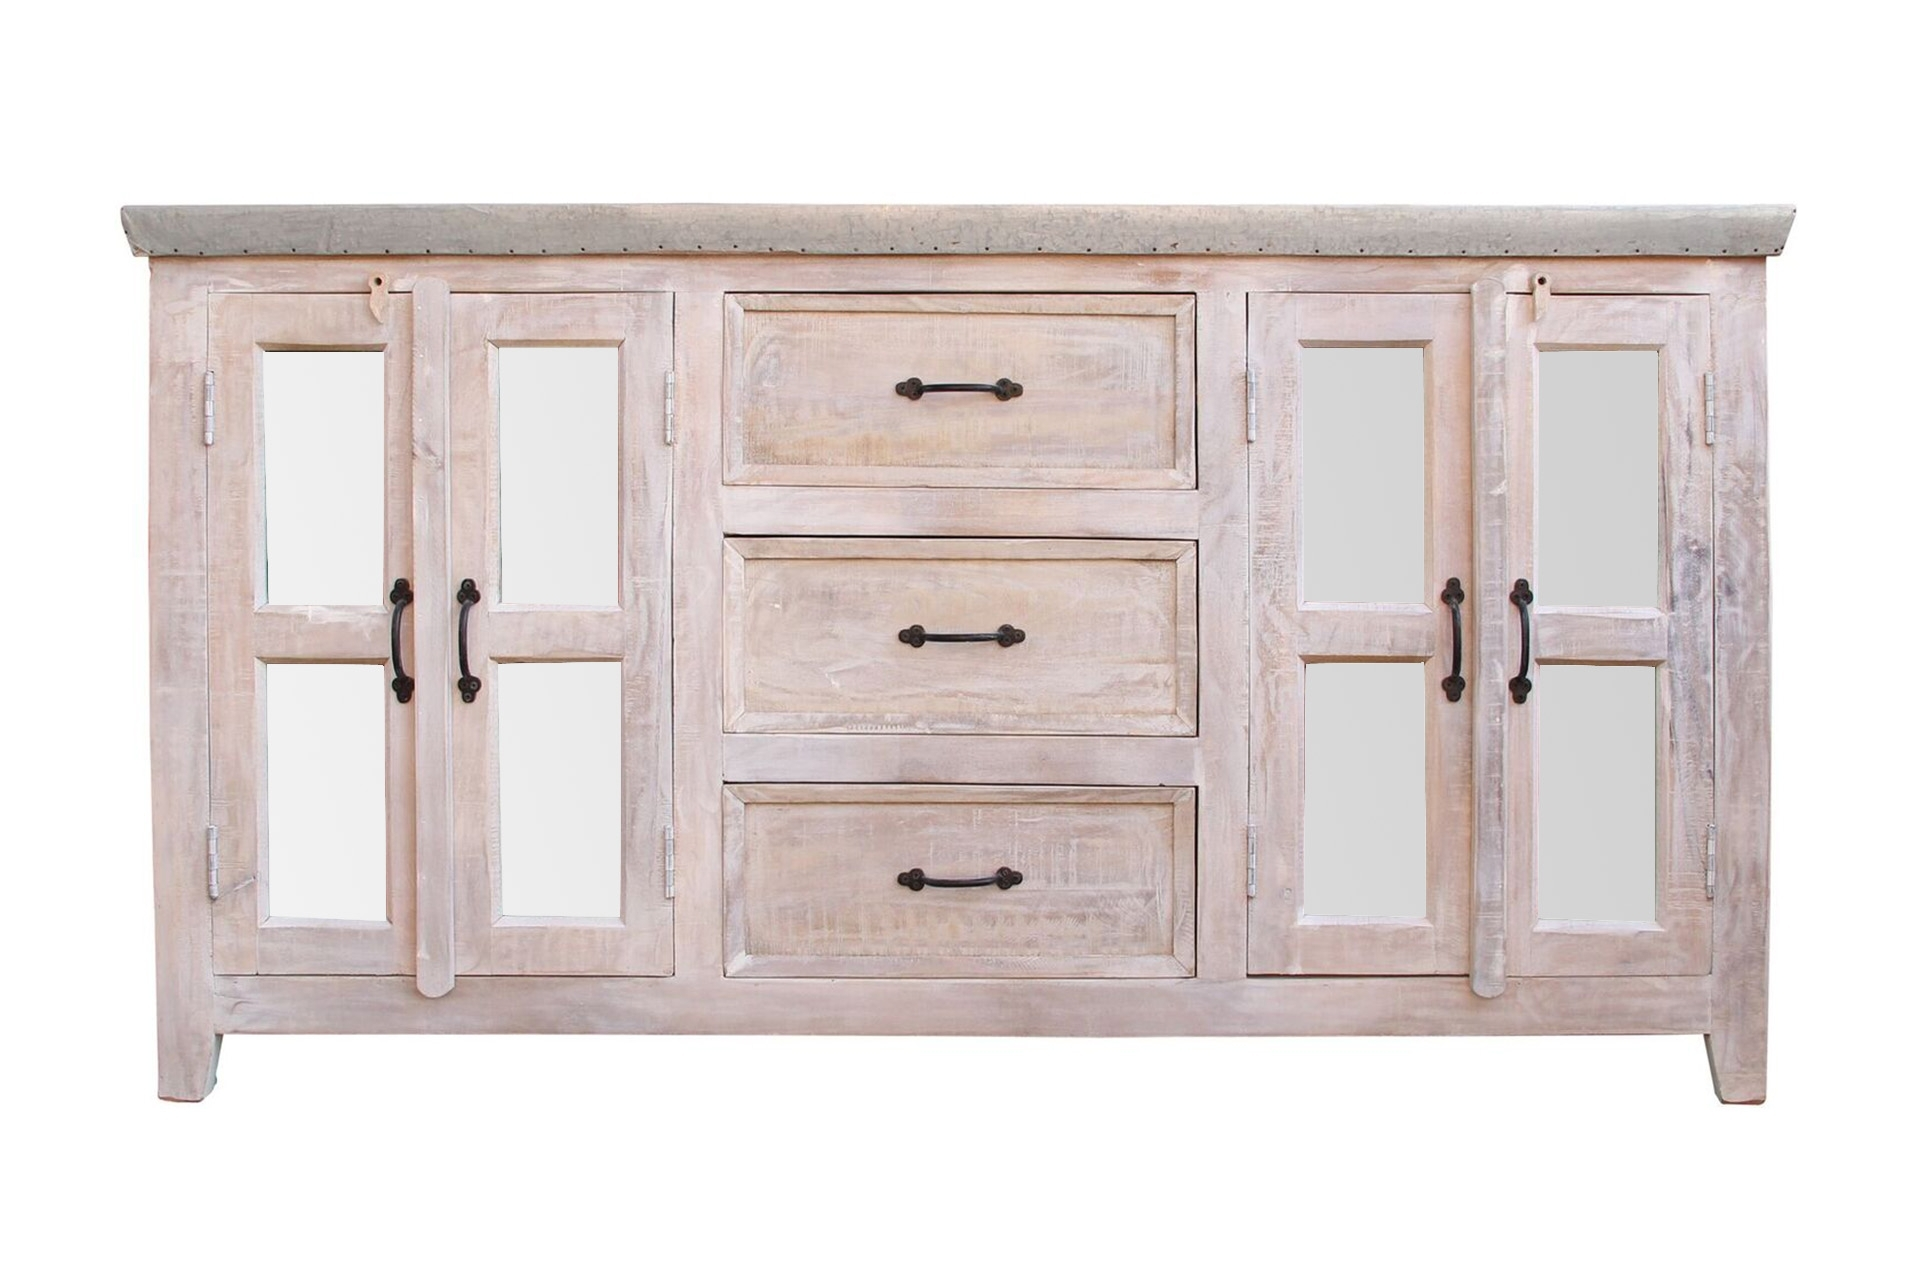 White Wash 4 Door/3 Drawer Glass Sideboard Within Newest White Wash 3 Door 3 Drawer Sideboards (View 3 of 20)